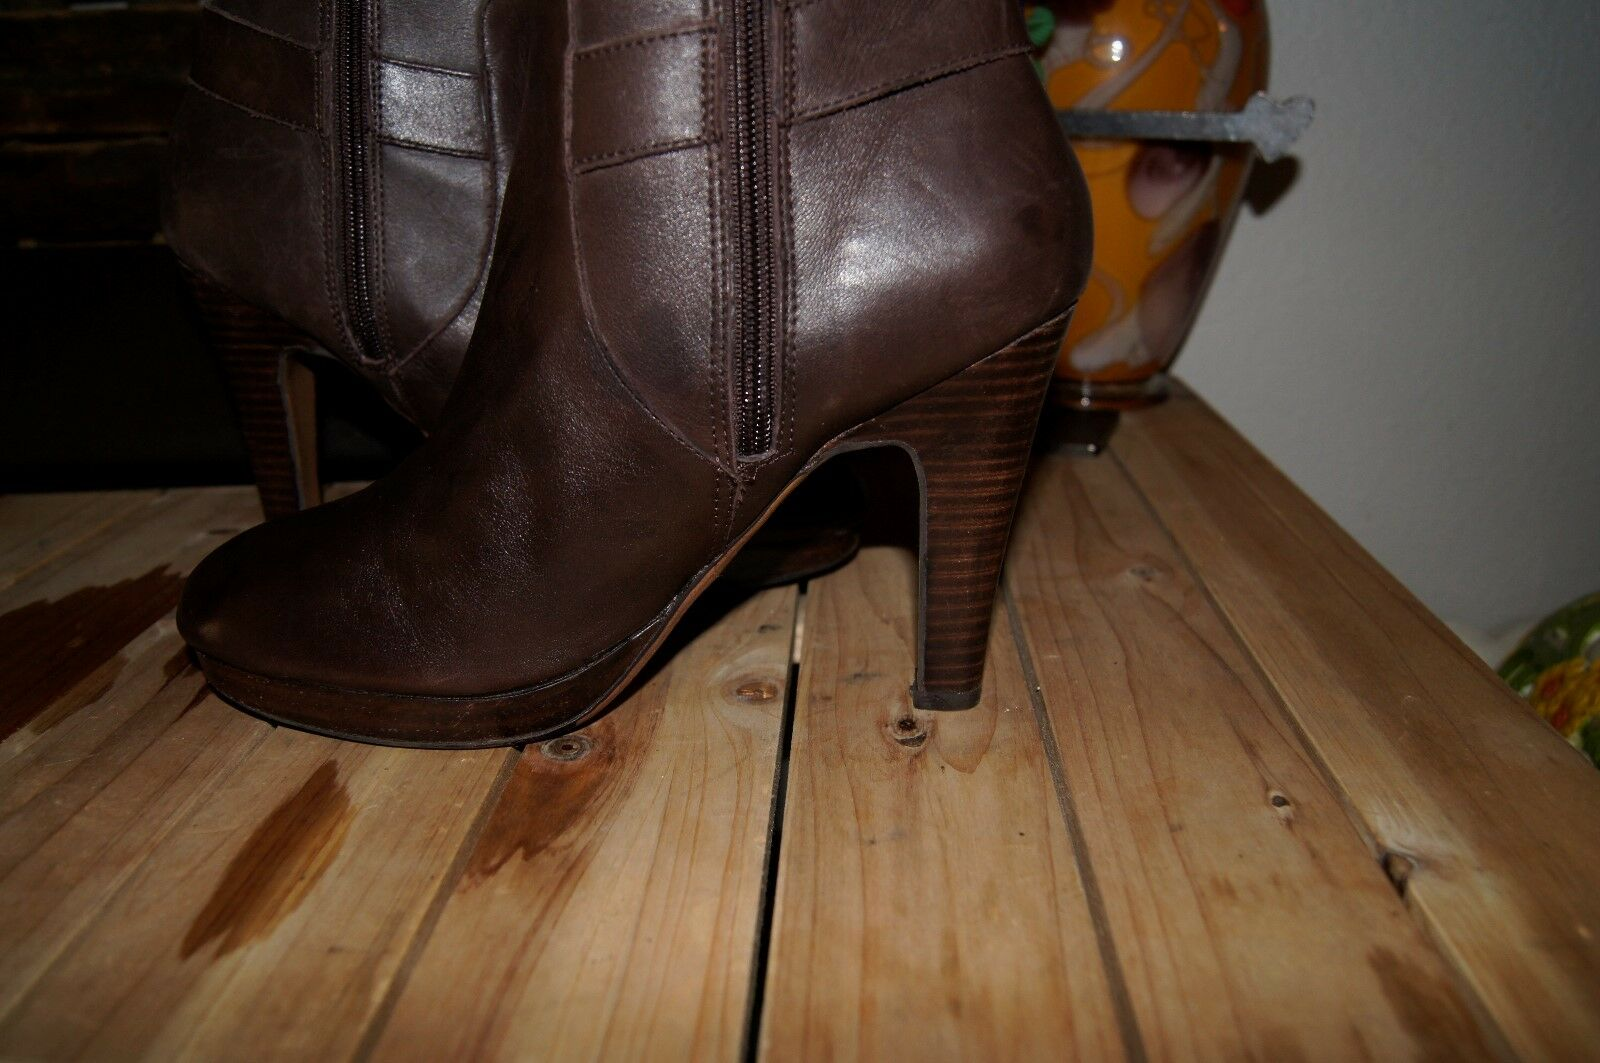 Zigi soho Boots 9 9 9 ZIGI HIGH HEEL boots 9 tall leather boots 9 high heel boots 9 270f2c